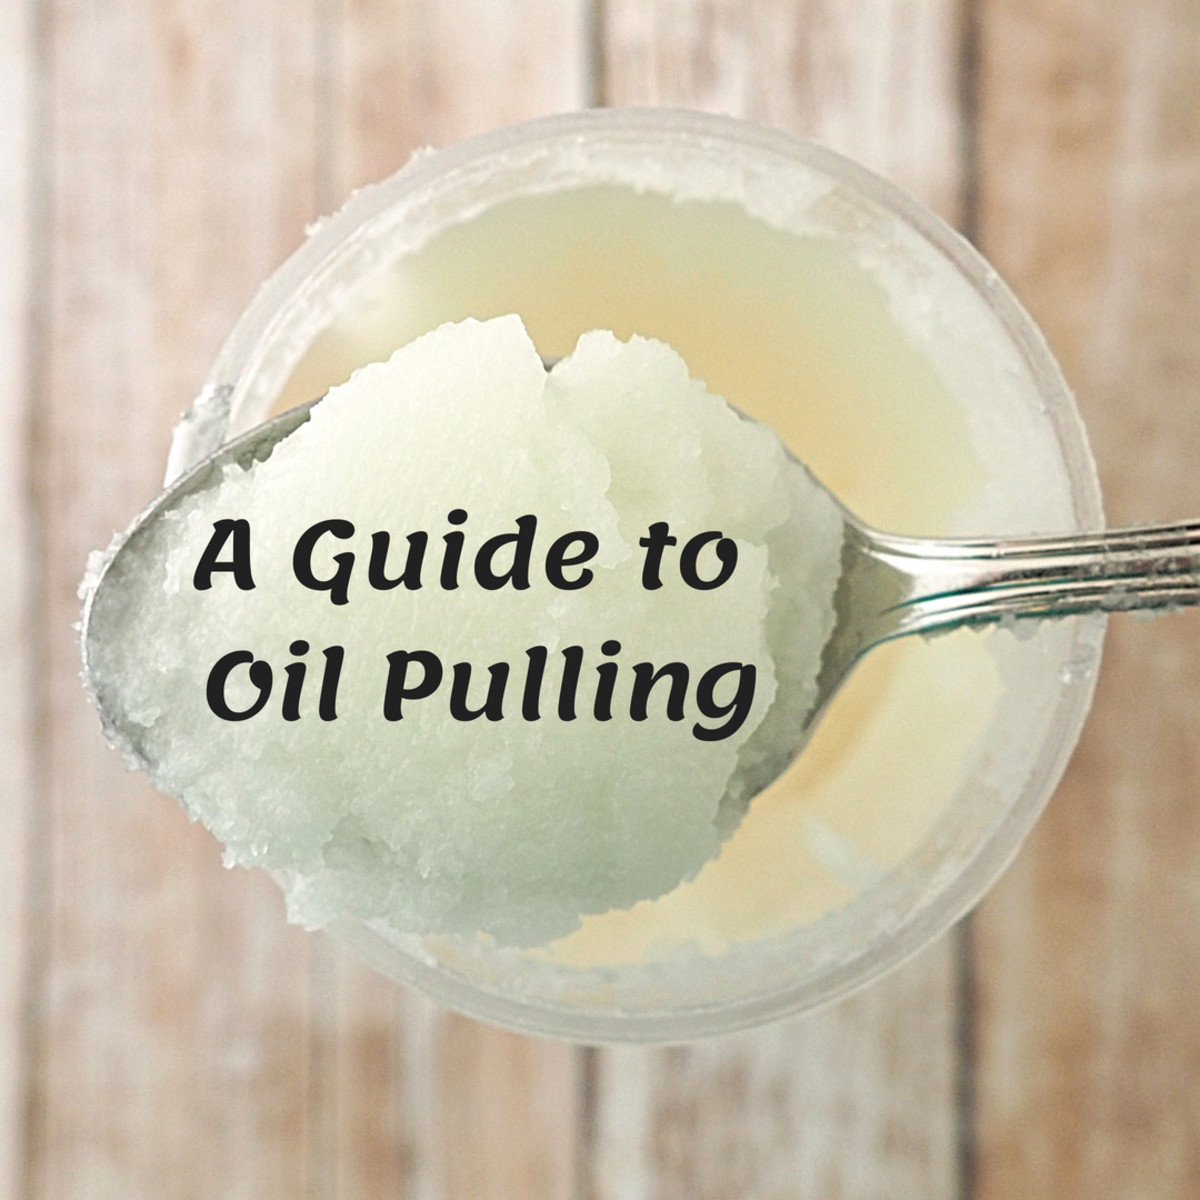 Oil Pulling simply means swishing a tablespoonful of oil in your mouth for up to 20 minutes.